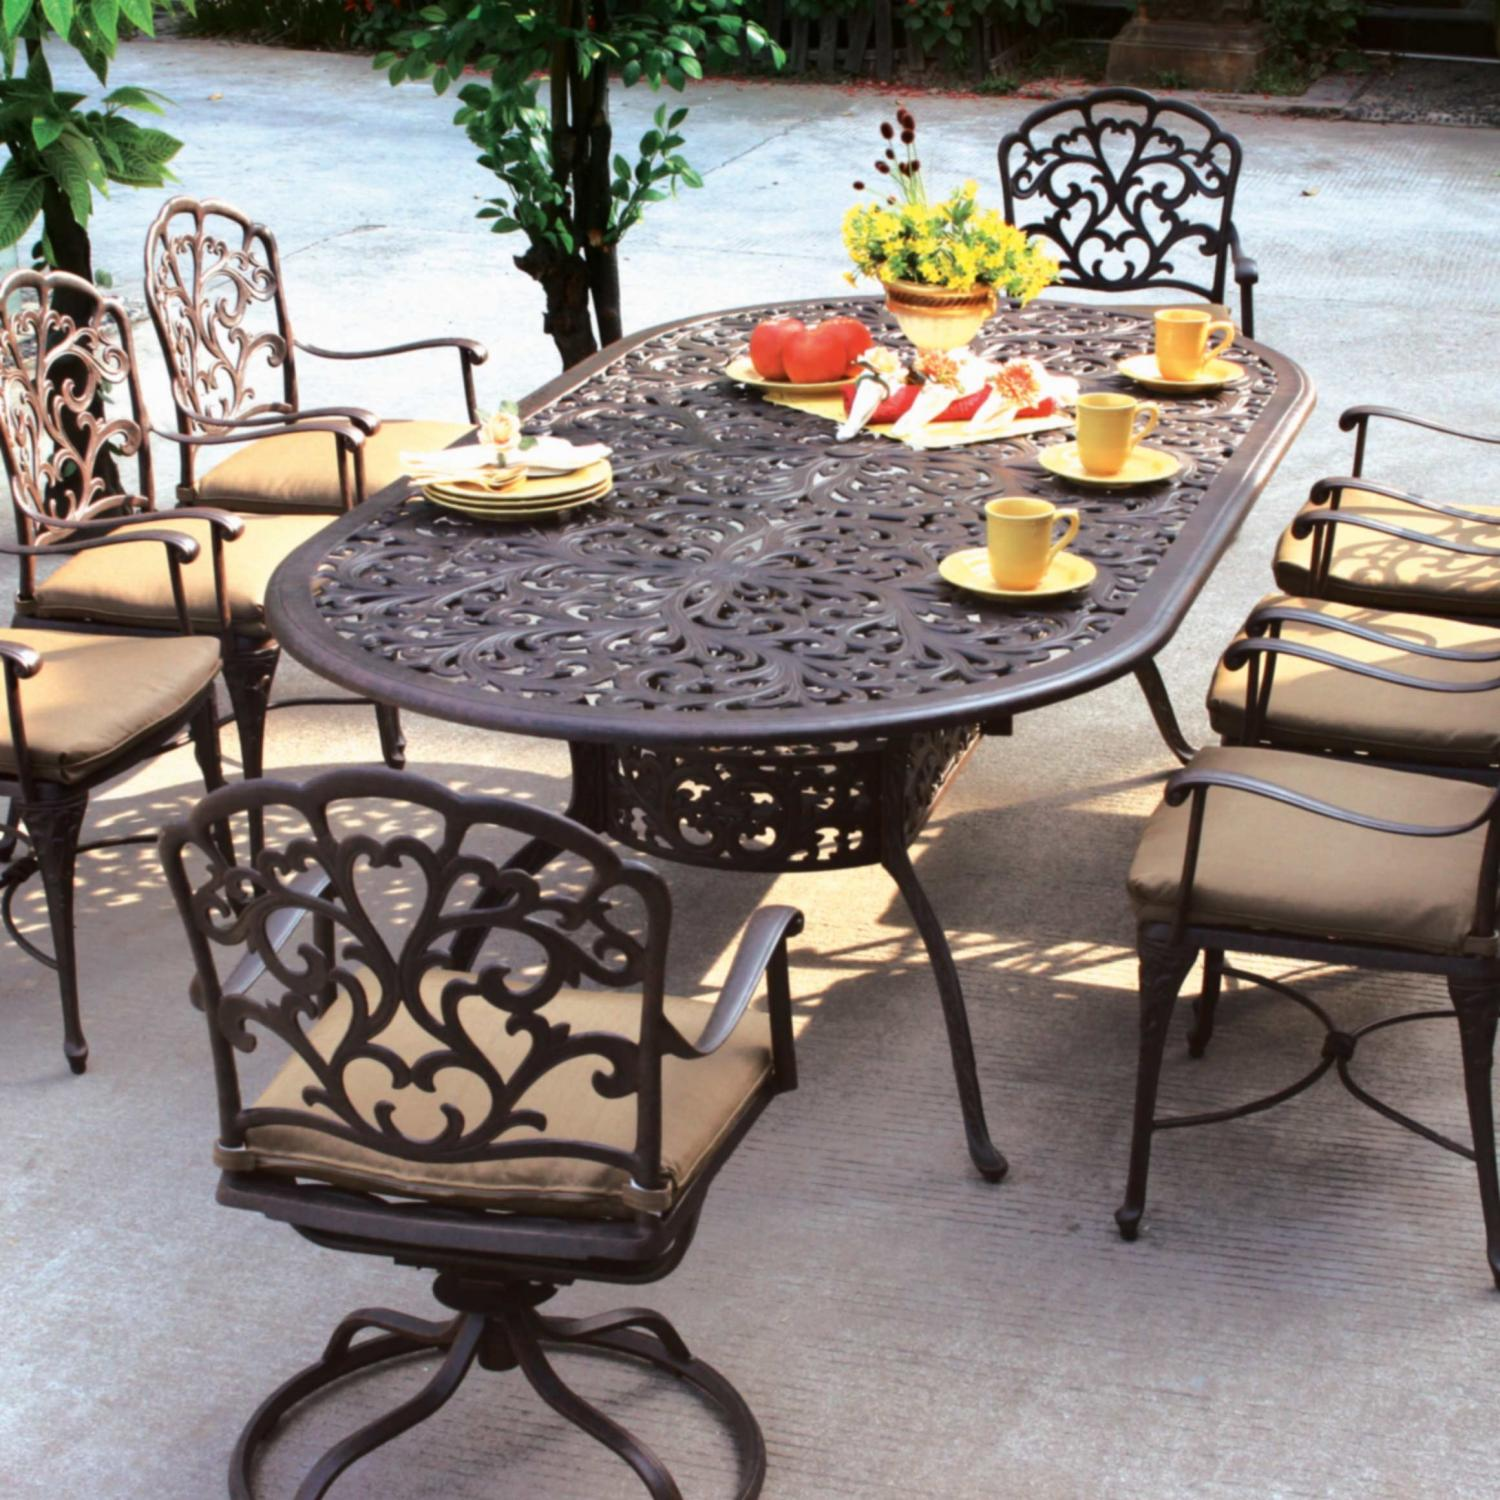 Patio Dining Furniture U2013 Surprising U0026 Helpful Ideas To Purchase The Best  Furniture   Dining Room Furniture Nice Design